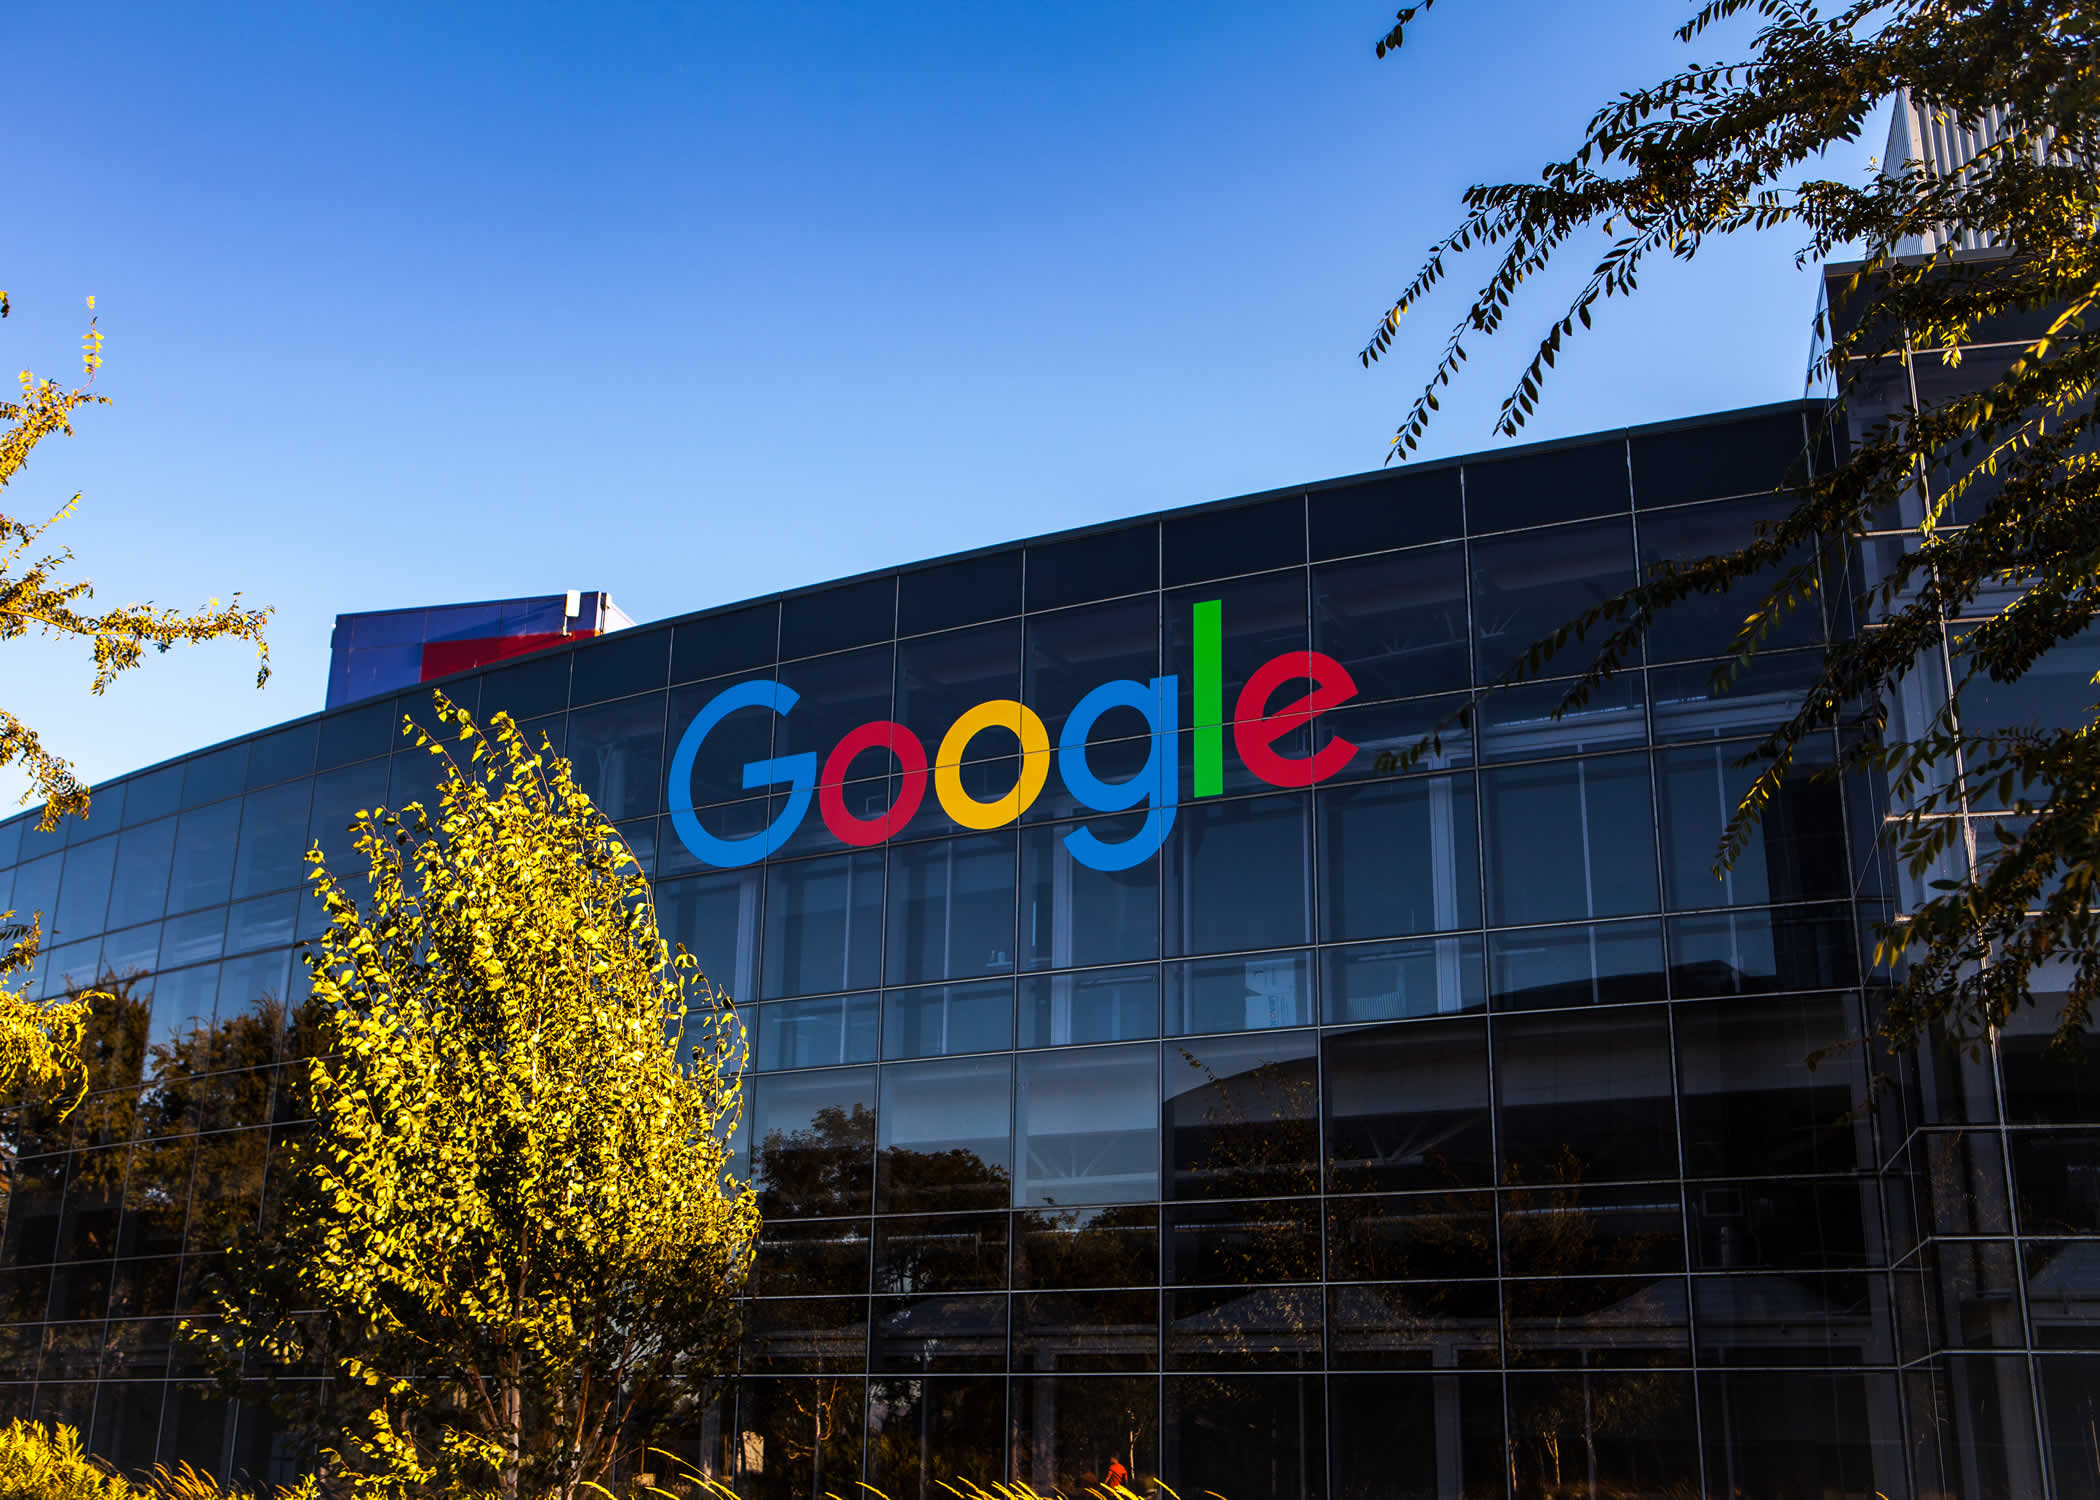 Despite Prior Decision Emphasizing Burden, ALJ Orders Google To Produce Extensive Pay Data Fields To OFCCP: Decision Narrows Scope of OFCCP's Request But Leaves In Place Tremendously Burdensome Information Demand